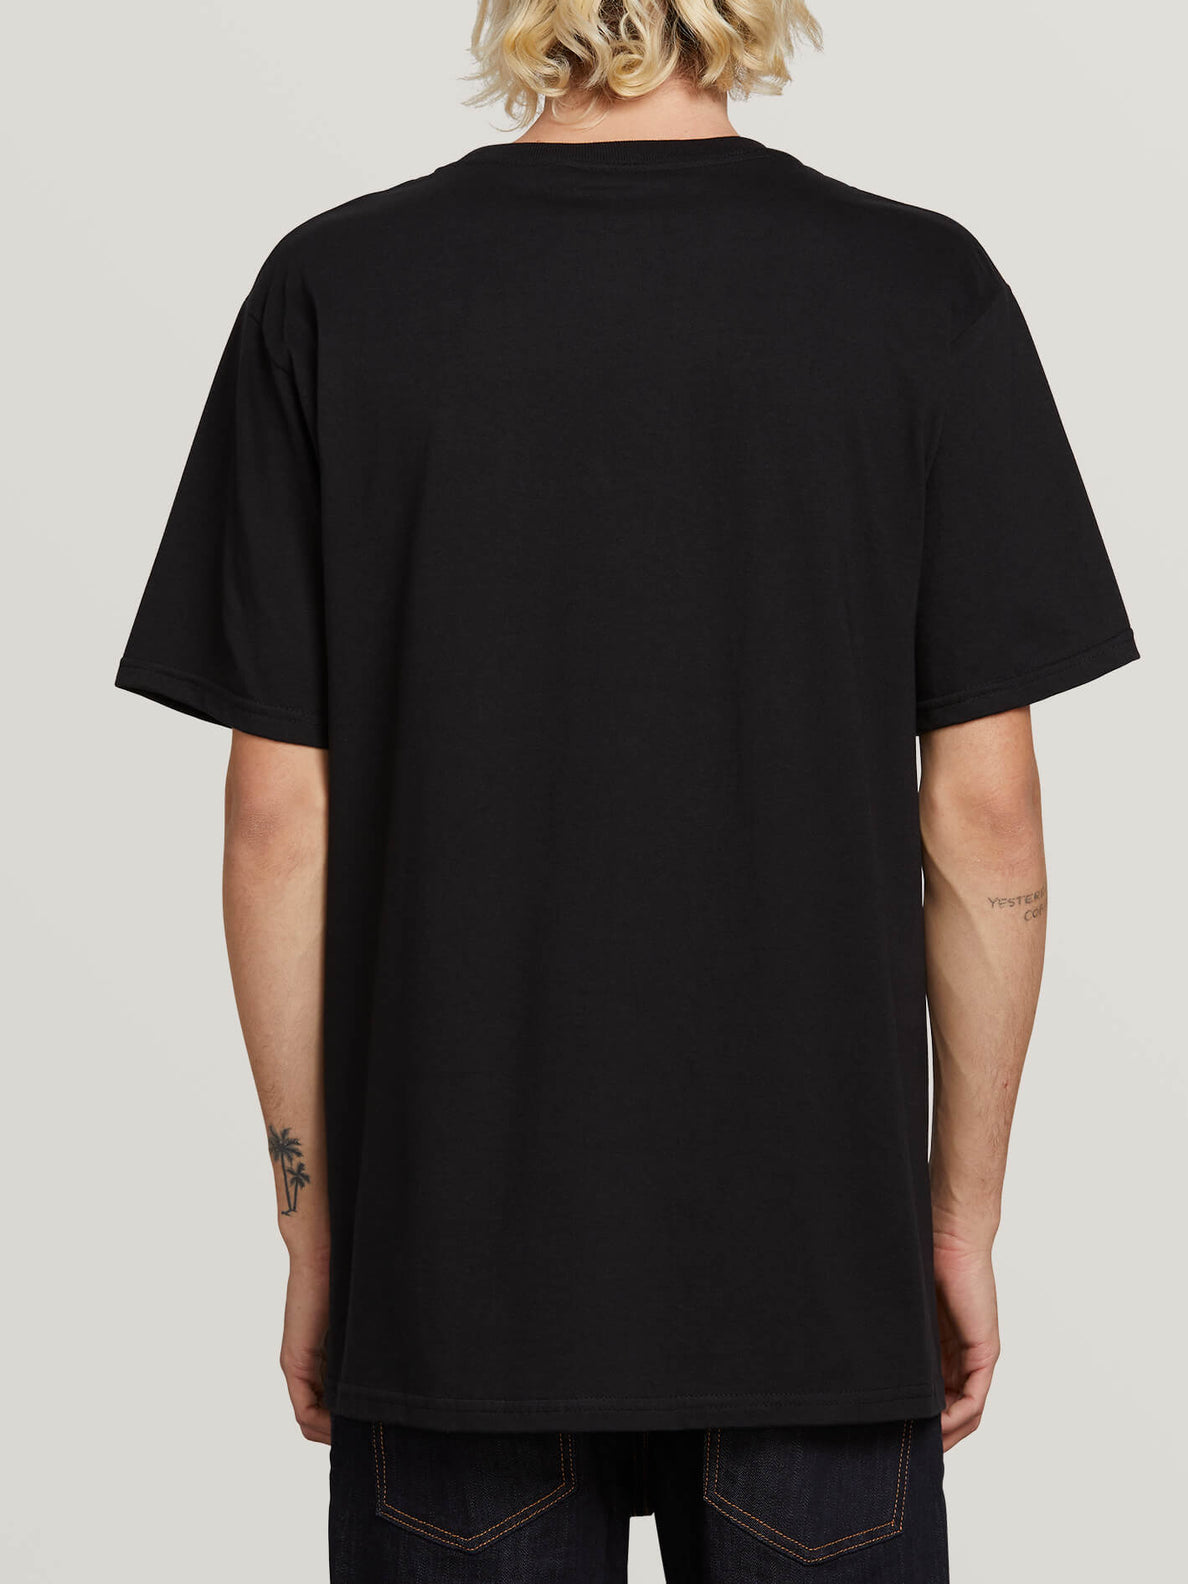 Super Clean Short Sleeve Tee In Black, Back View